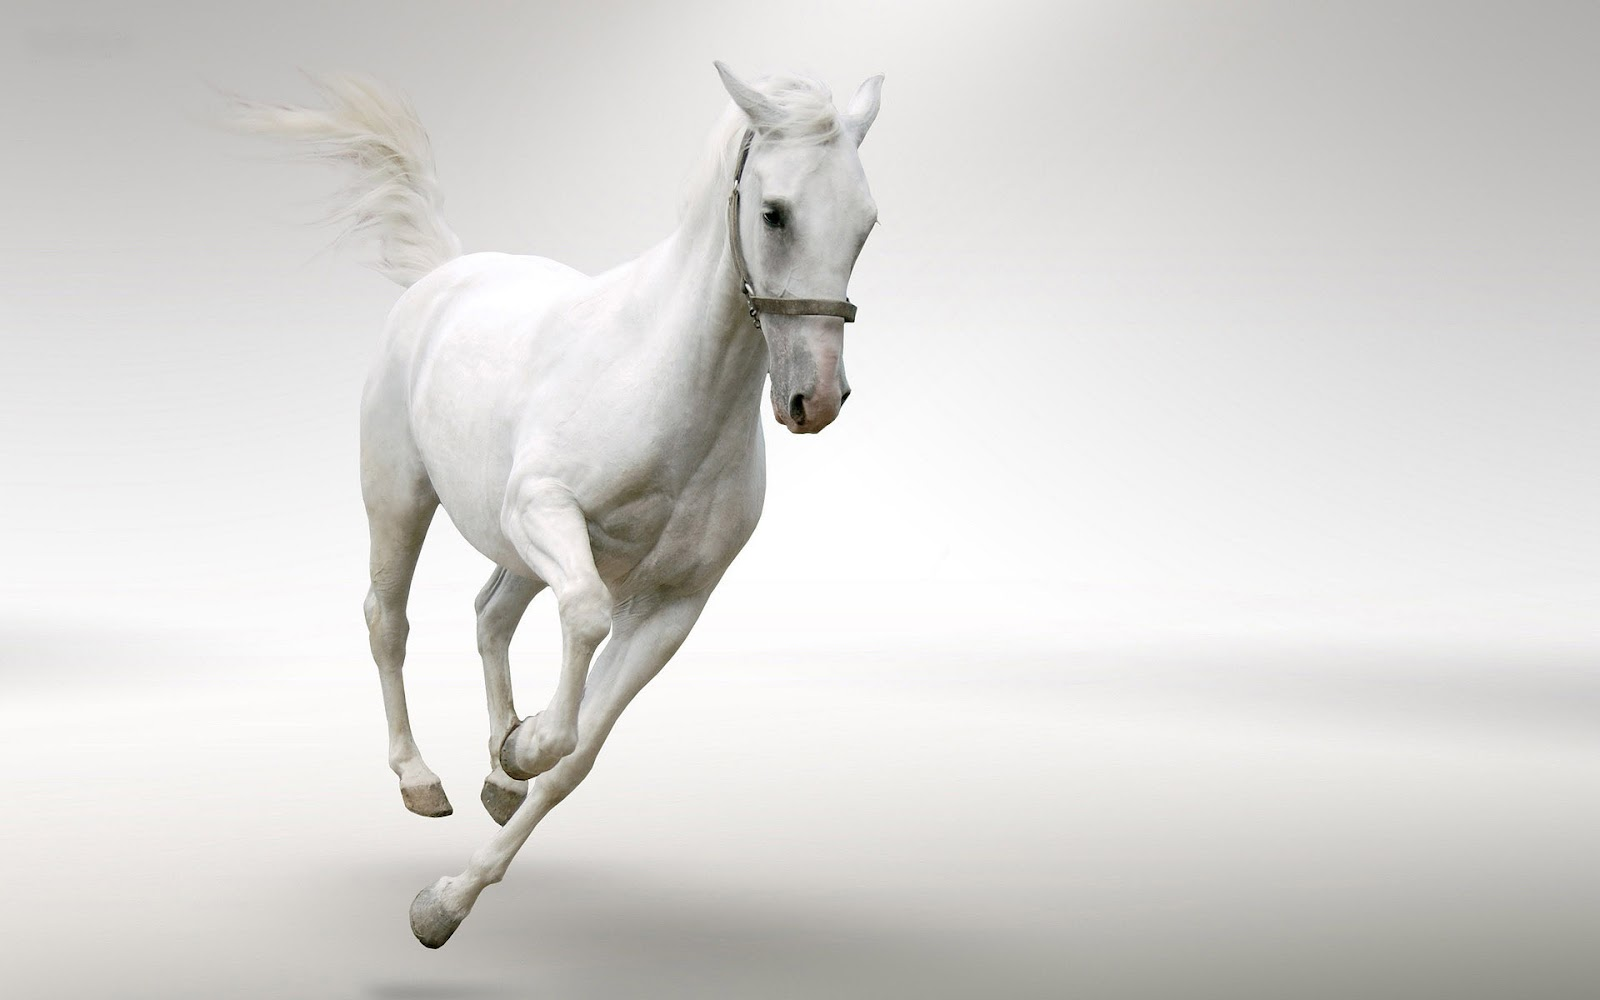 White running horses - photo#26